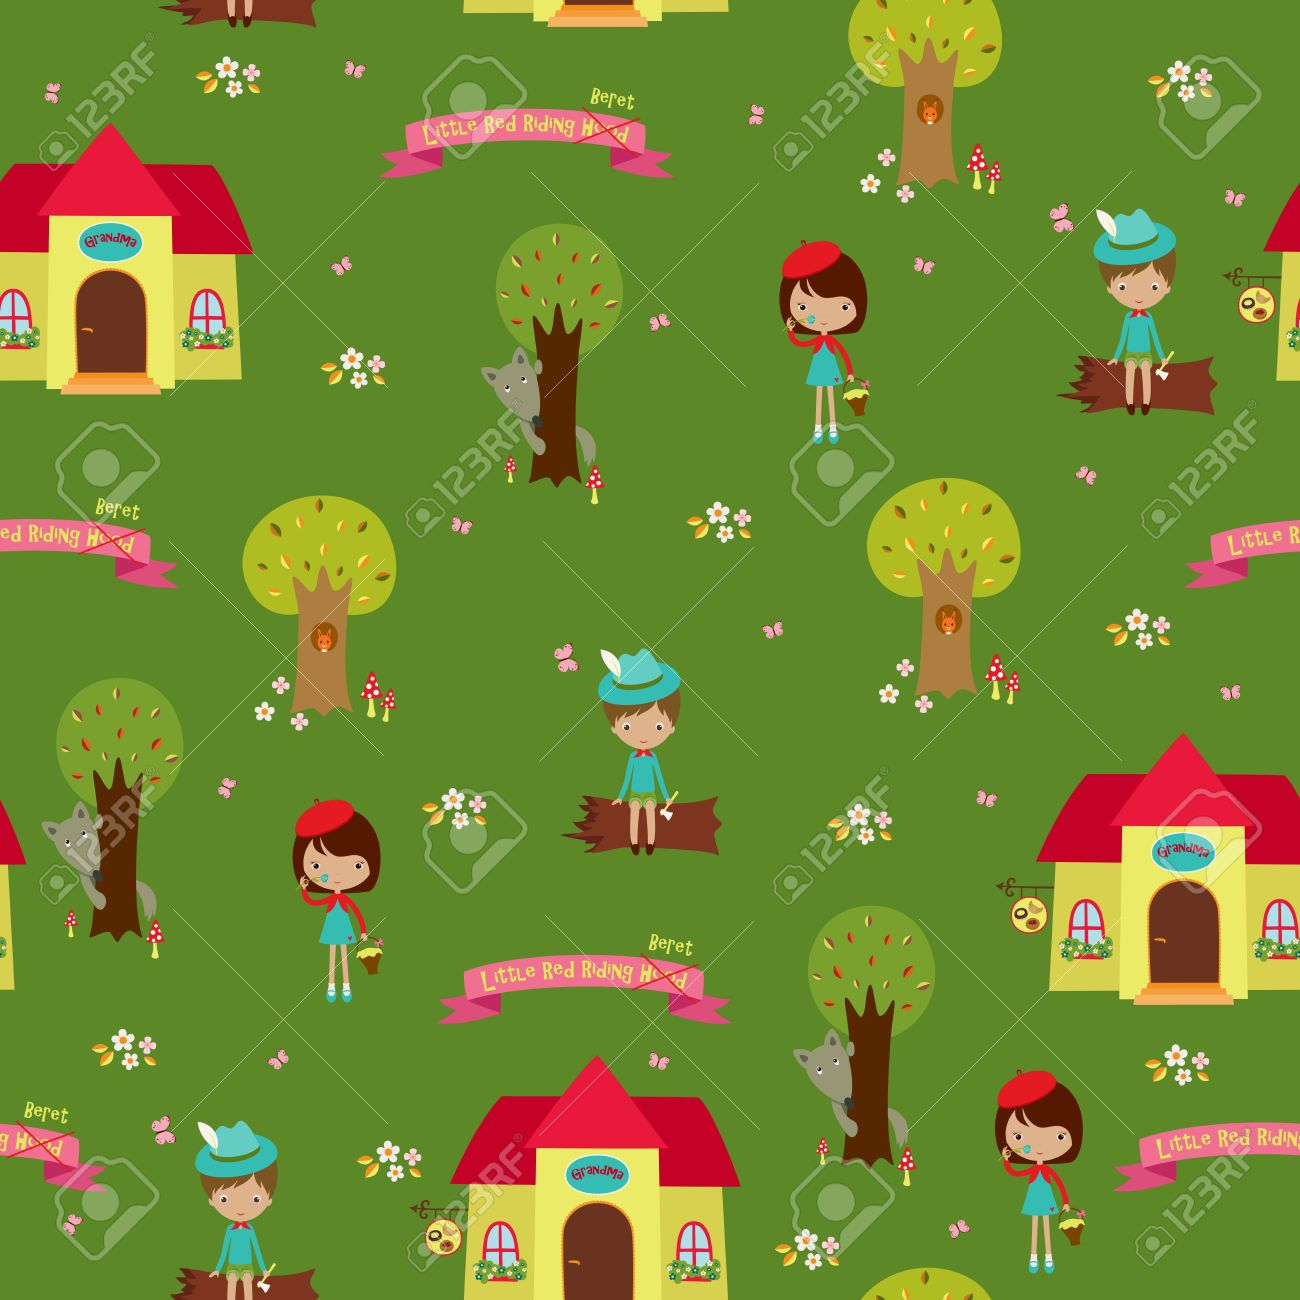 Seamless Wallpaper Design Fairy Tale Little Red Riding Hood